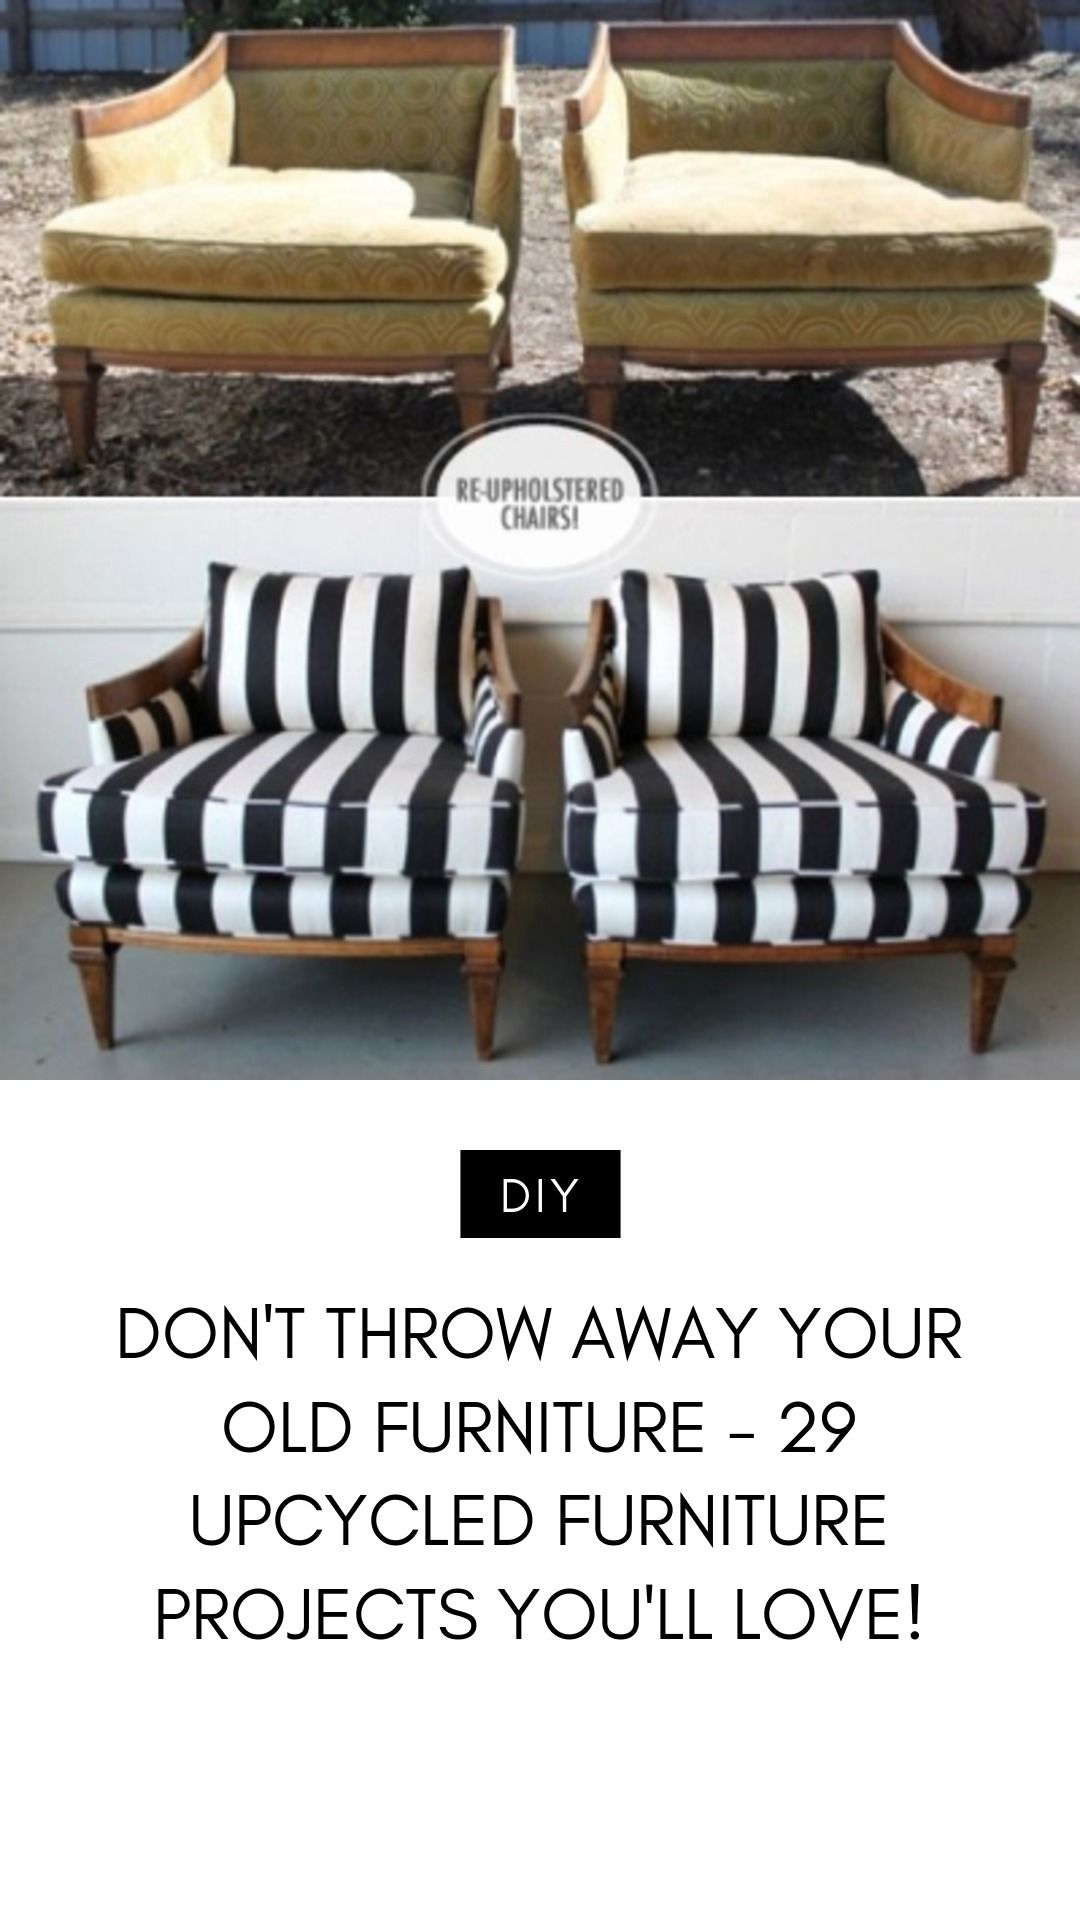 Don T Throw Away Your Old Furniture 29 Upcycled Furniture Projects You Ll Love Furniture Projects Furniture Upcycled Furniture